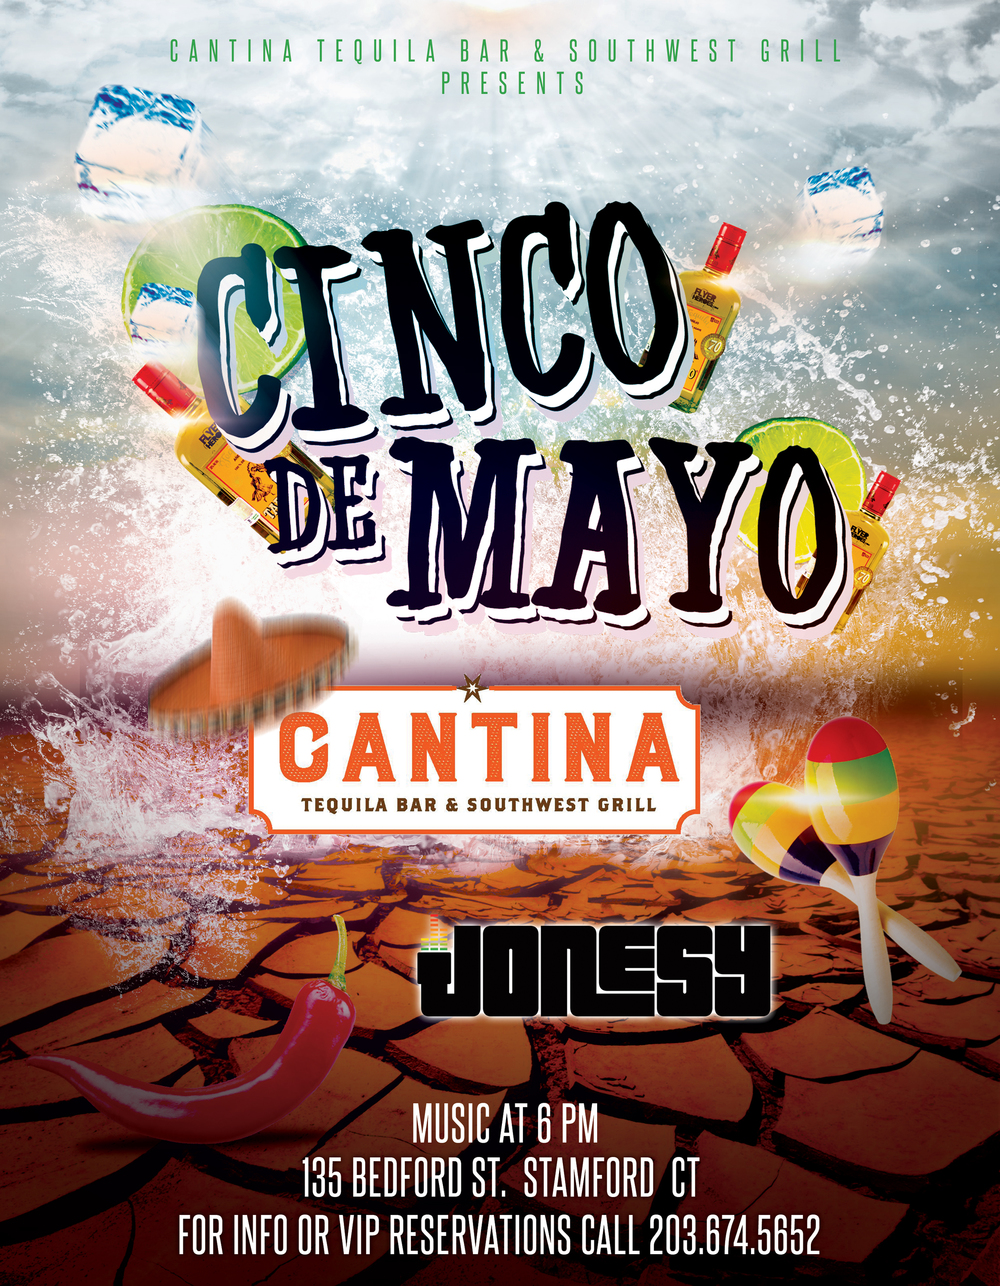 CINCO DE MAYO JOIN US AT  CANTINA TEQUILA BAR & SOUTHWEST GRILL  IN DOWNTOWN STAMFORD FOR MUSIC BY YOURS TRULY 6PM-CLOSE!  BE SURE TO ARRIVE EARLY TO AVOID A LINE.  DINNER RESERVATIONS ARE HIGHLY RECOMMENDED DUE TO A HIGH VOLUME OF GUESTS EXPECTED!  SEE YOU ALL THERE!